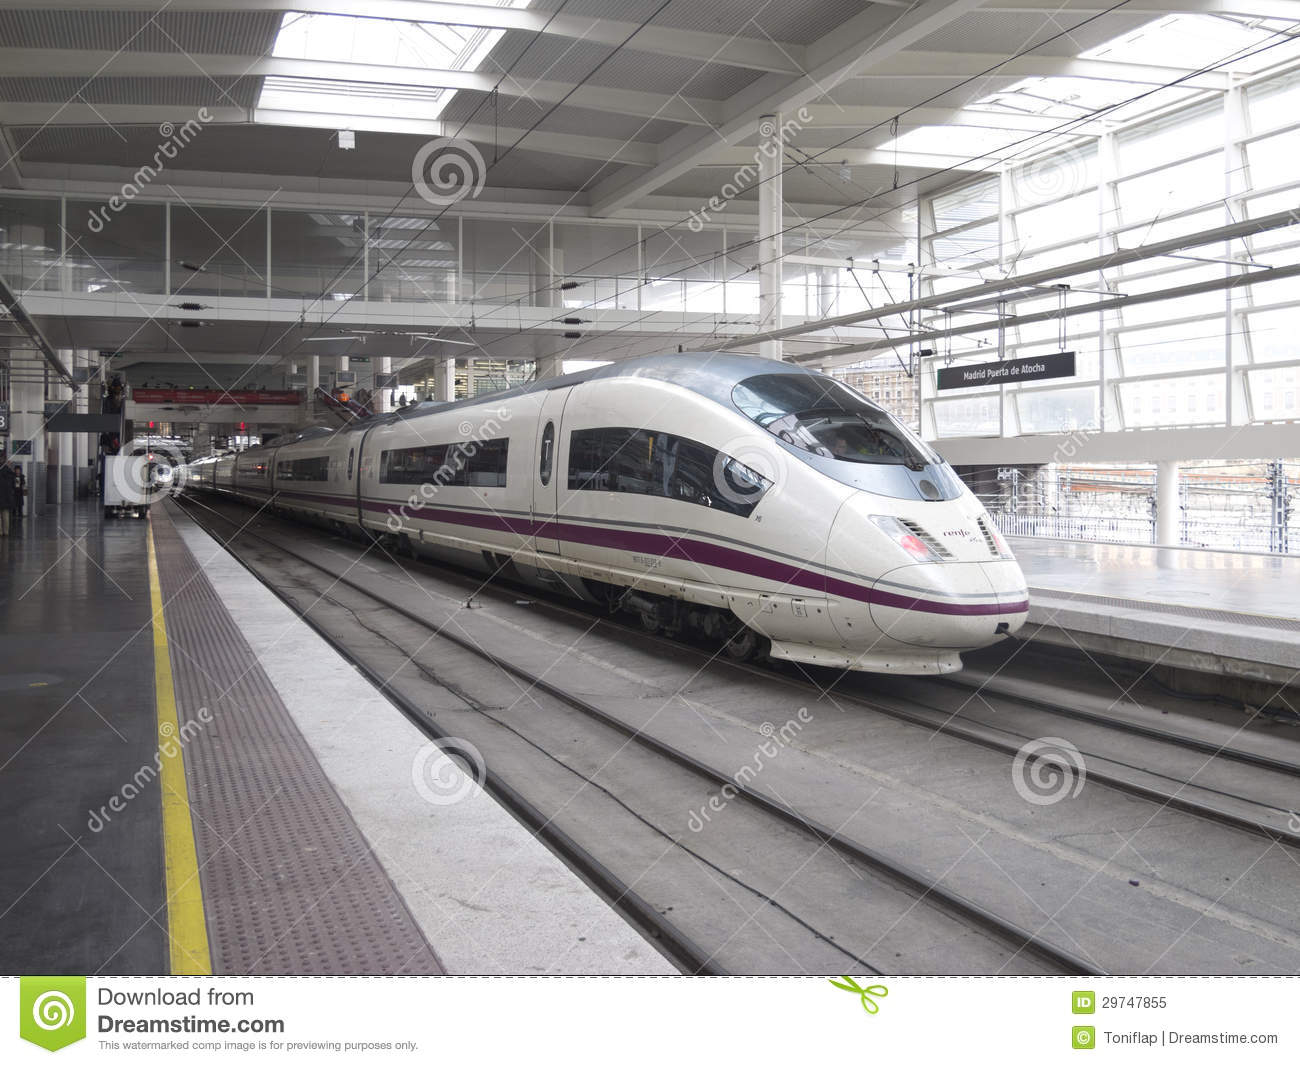 speed dating in madrid spain Where are spain's most famous jewish quarters take the high-speed train from madrid: everything you need to know about high-speed ave trains in spain.